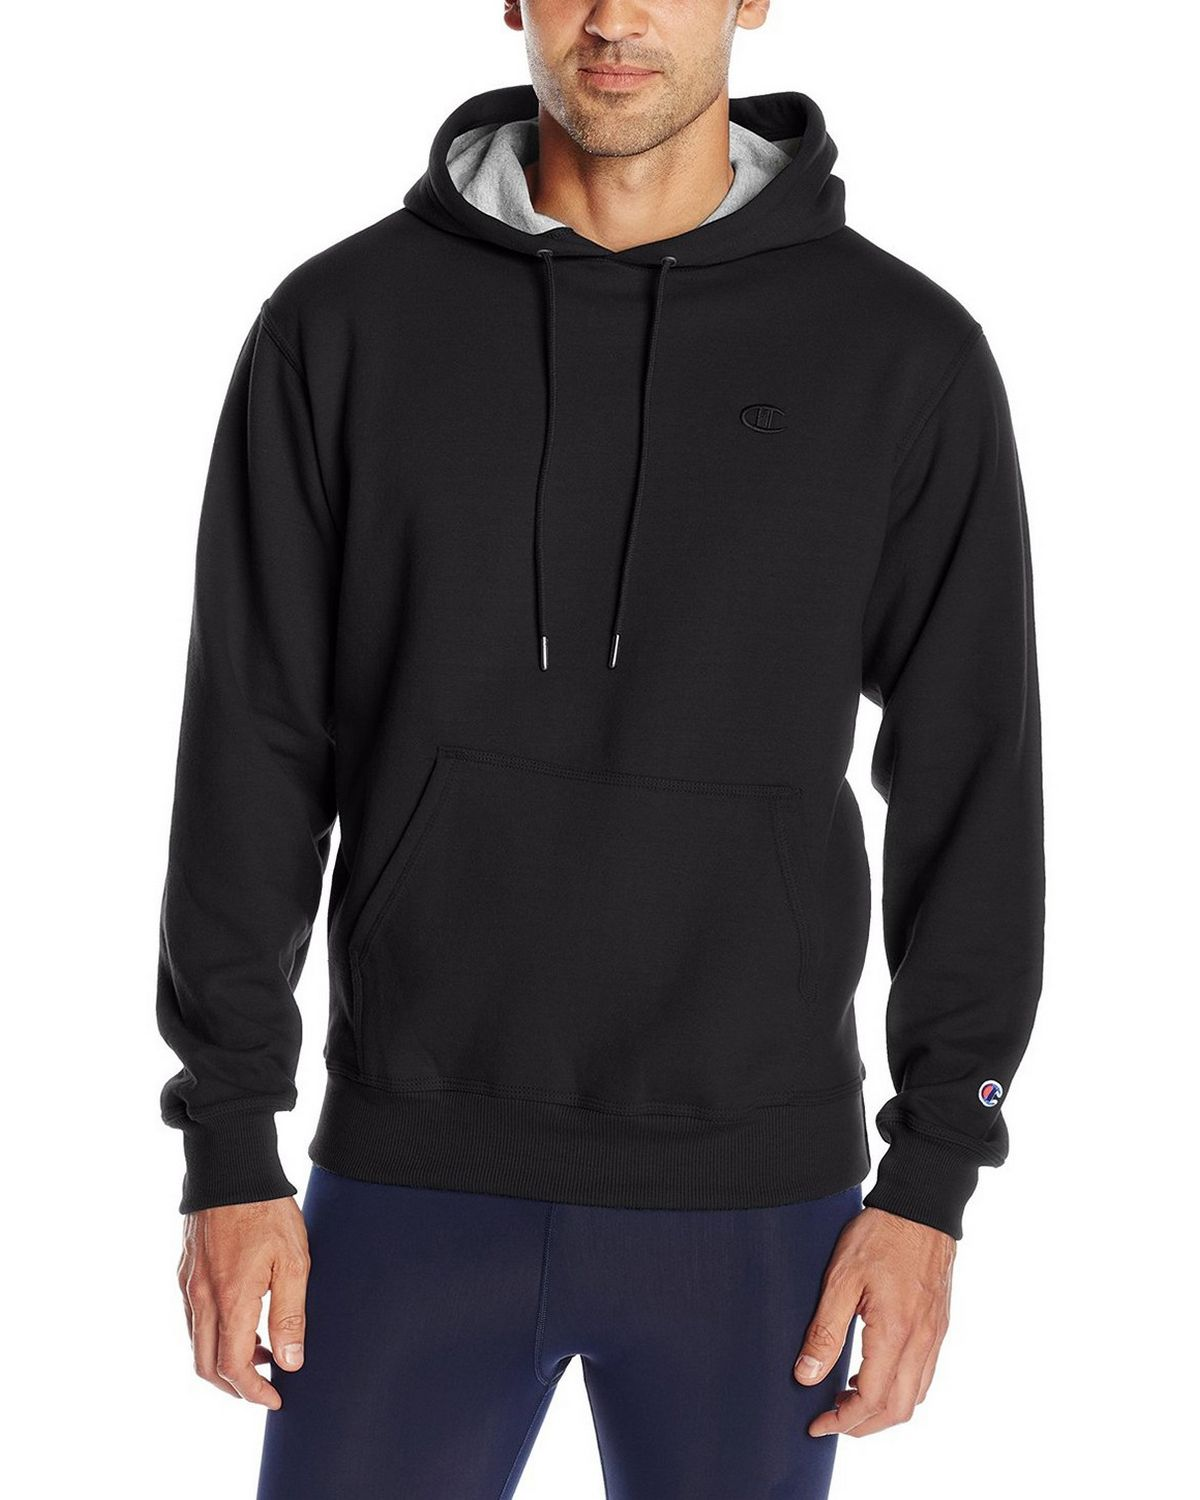 Champion S0889 Mens Fleece Pullover Hoodie - Black - M S0889